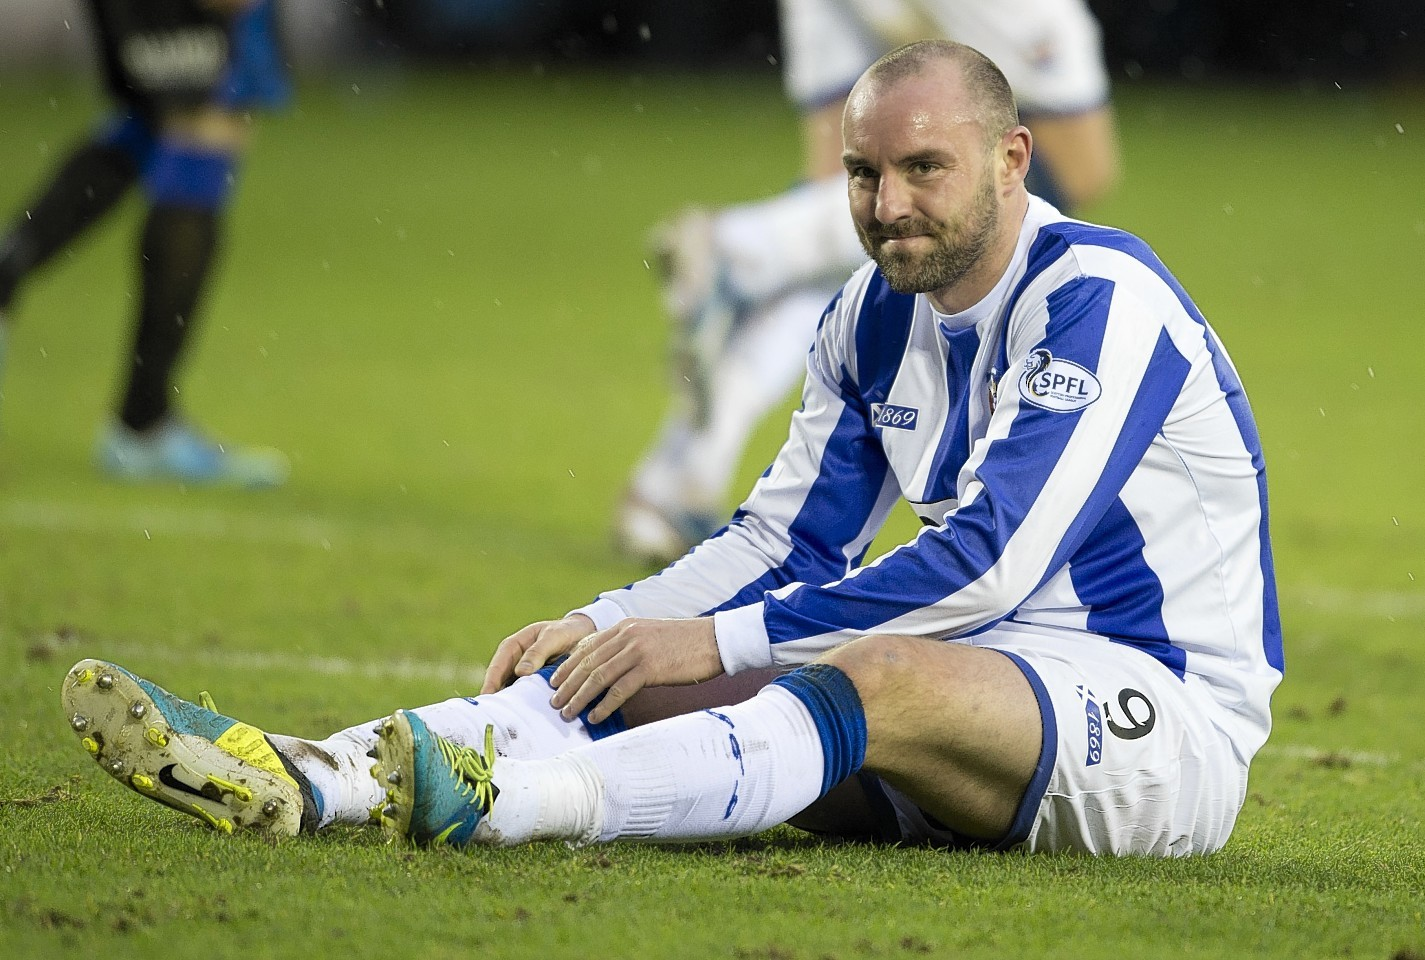 Kilmarnock forward Kris Boyd has received offers from Aberdeen and Dundee United